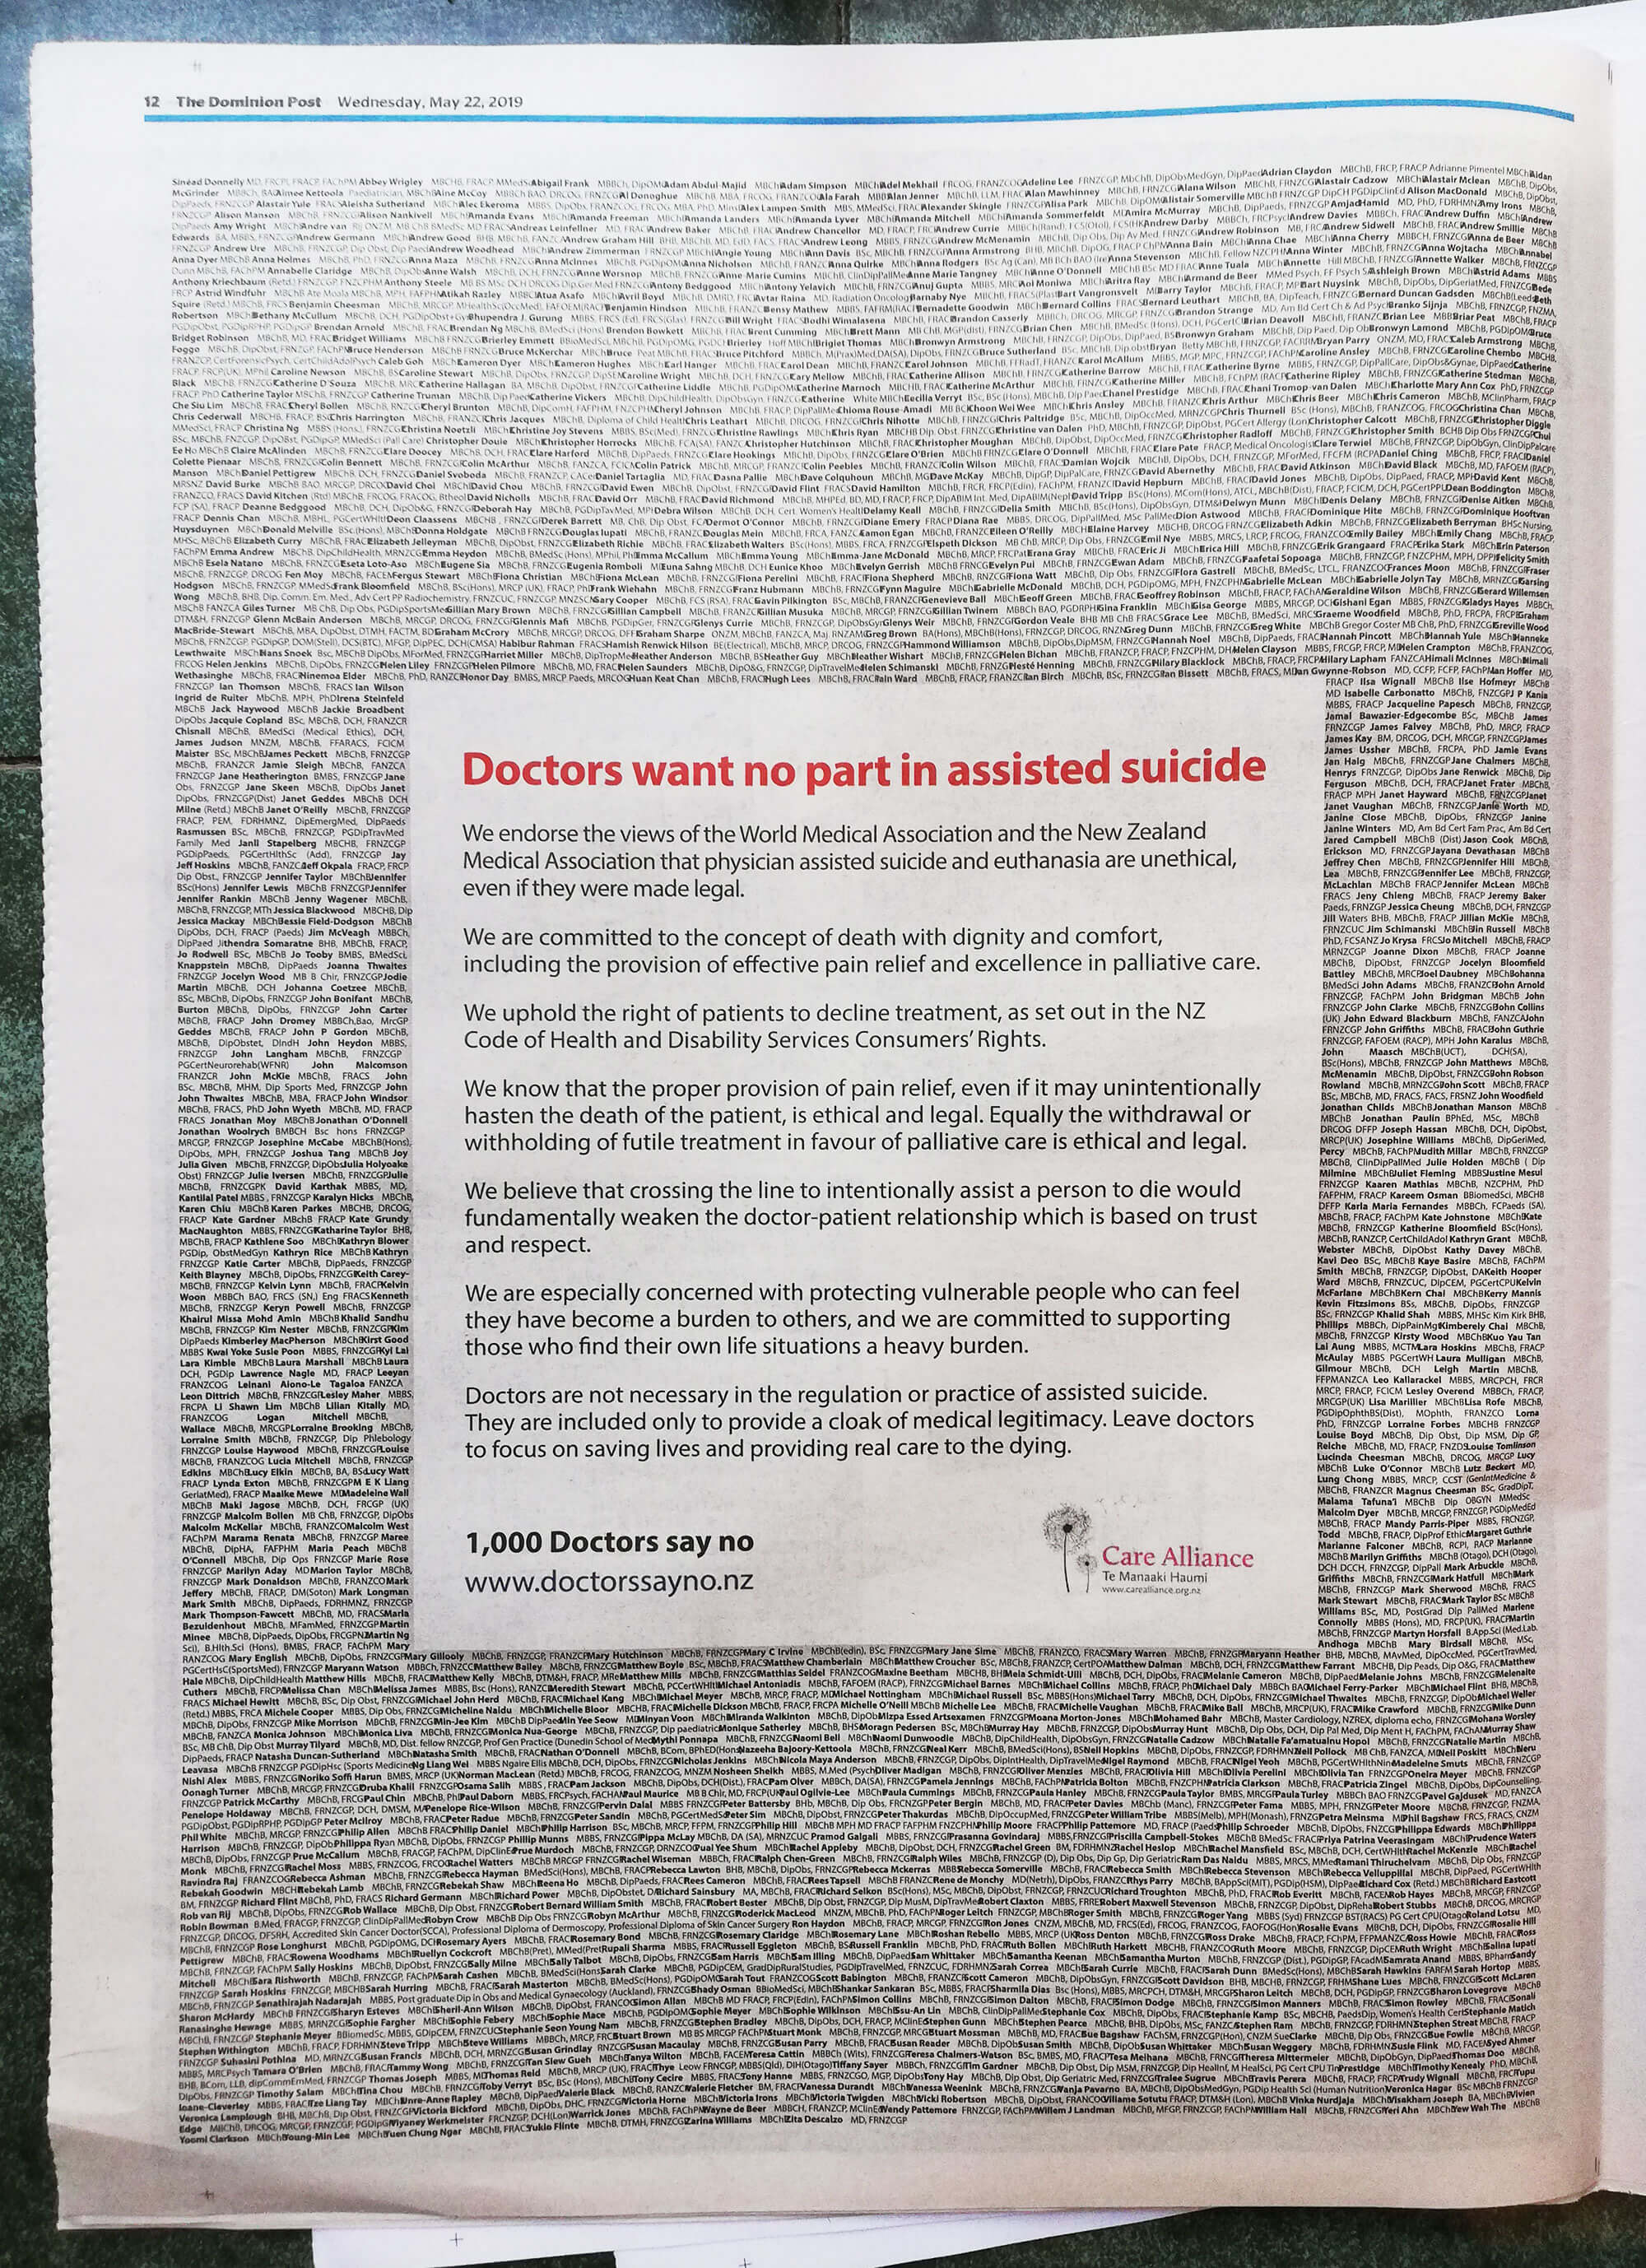 Dominion-Post-Doctors-want-no-part-in-assisted-suicide-full-page.jpg